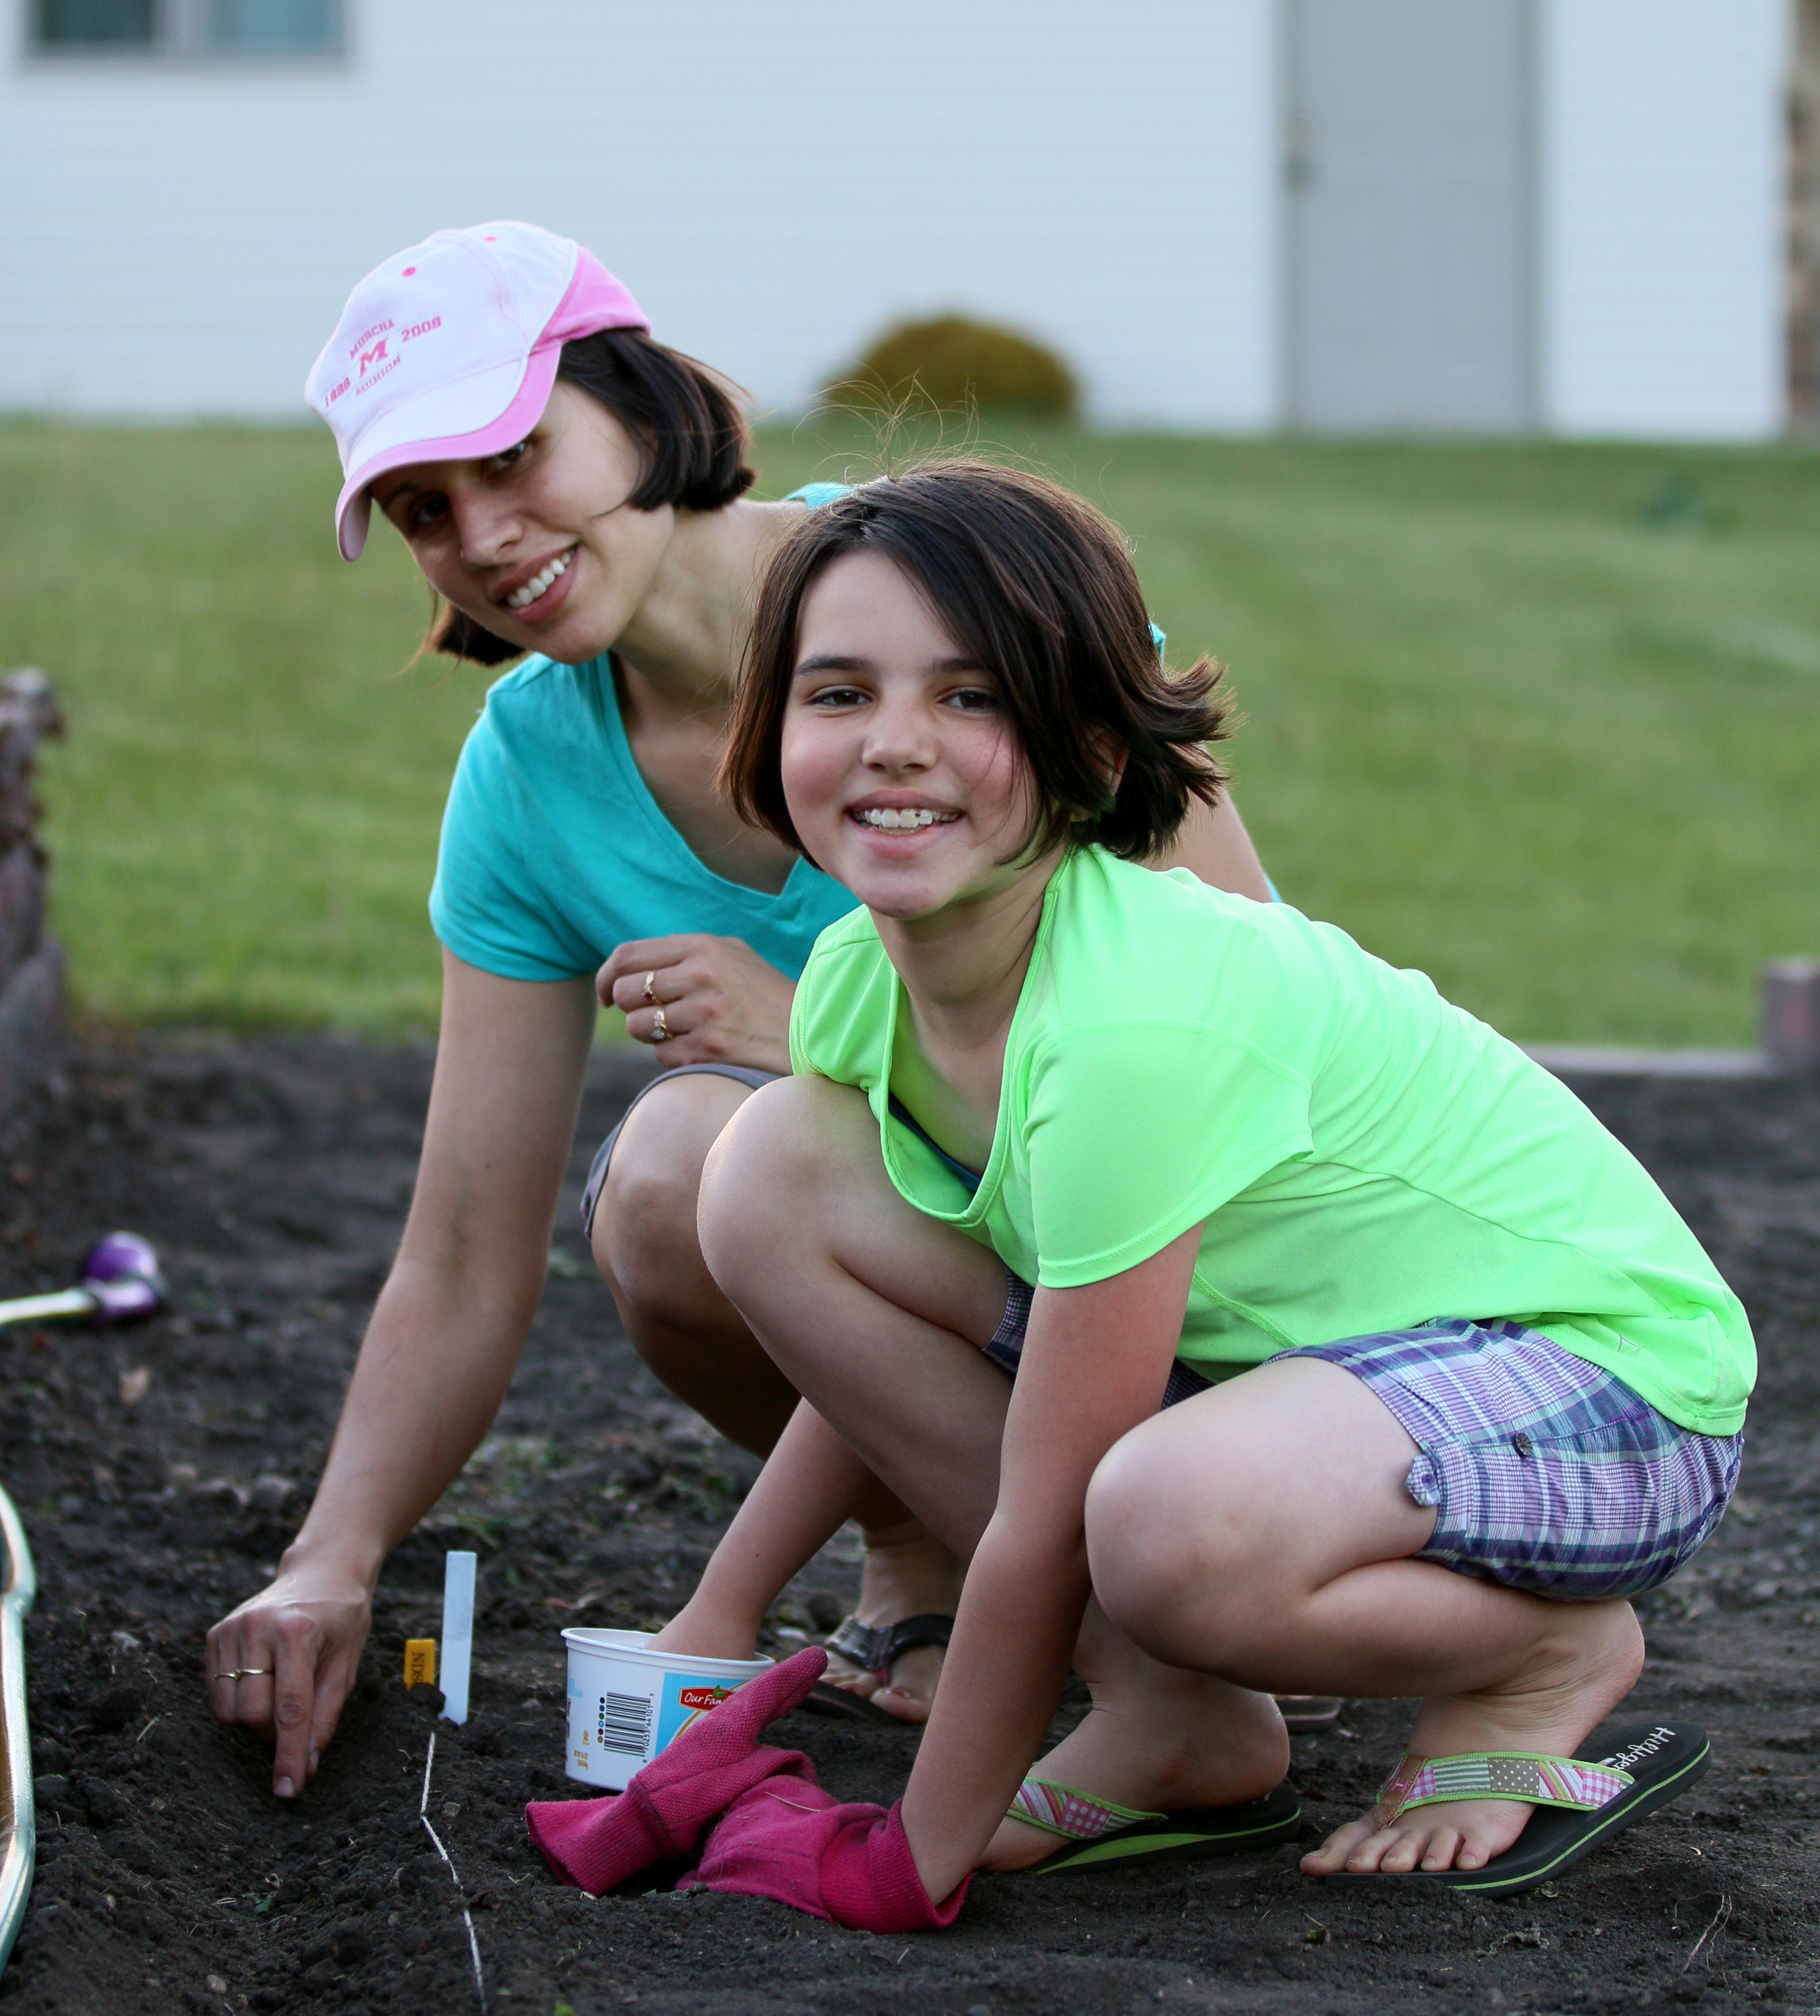 These gardeners are sowing their garden. (Photo courtesy of Angie Waletzko, Lisbon, N.D.